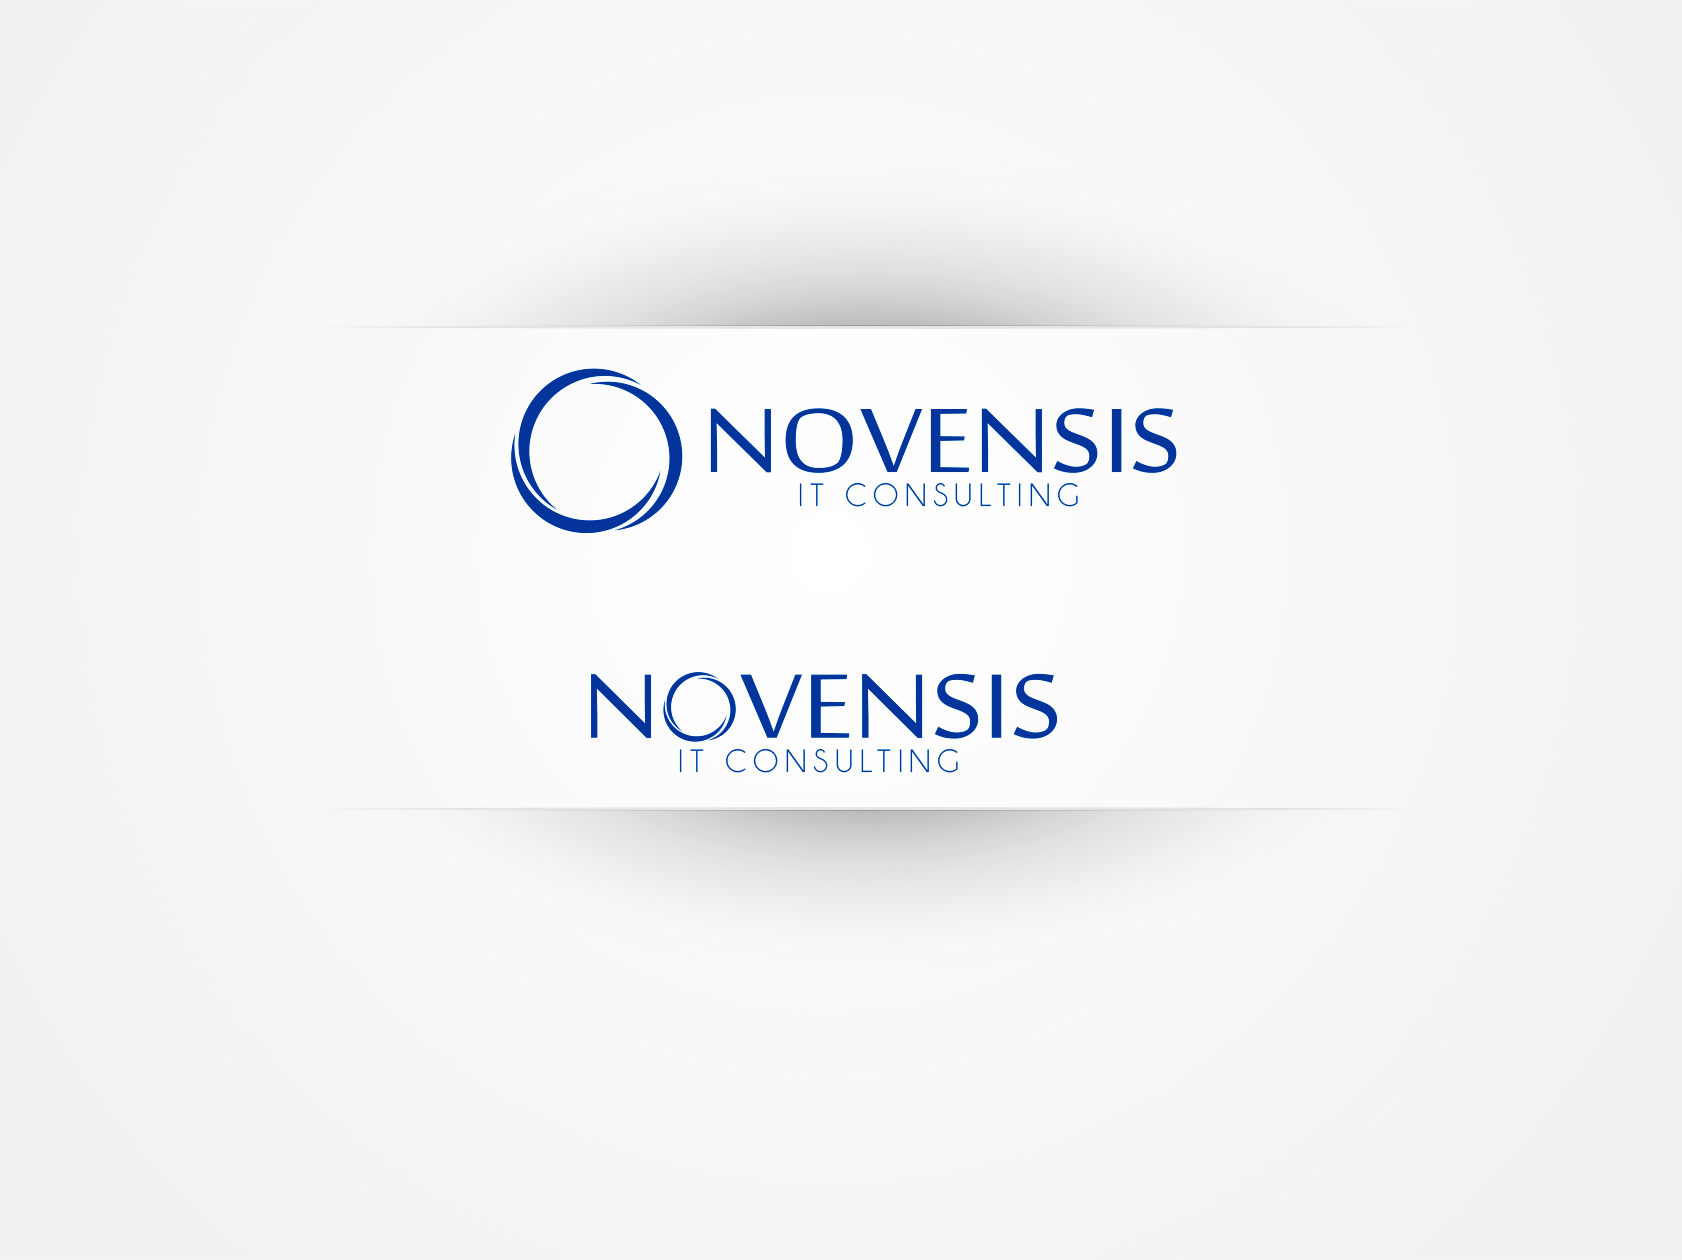 Logo Design by OmegaDesigns - Entry No. 188 in the Logo Design Contest Novensis Logo Design.